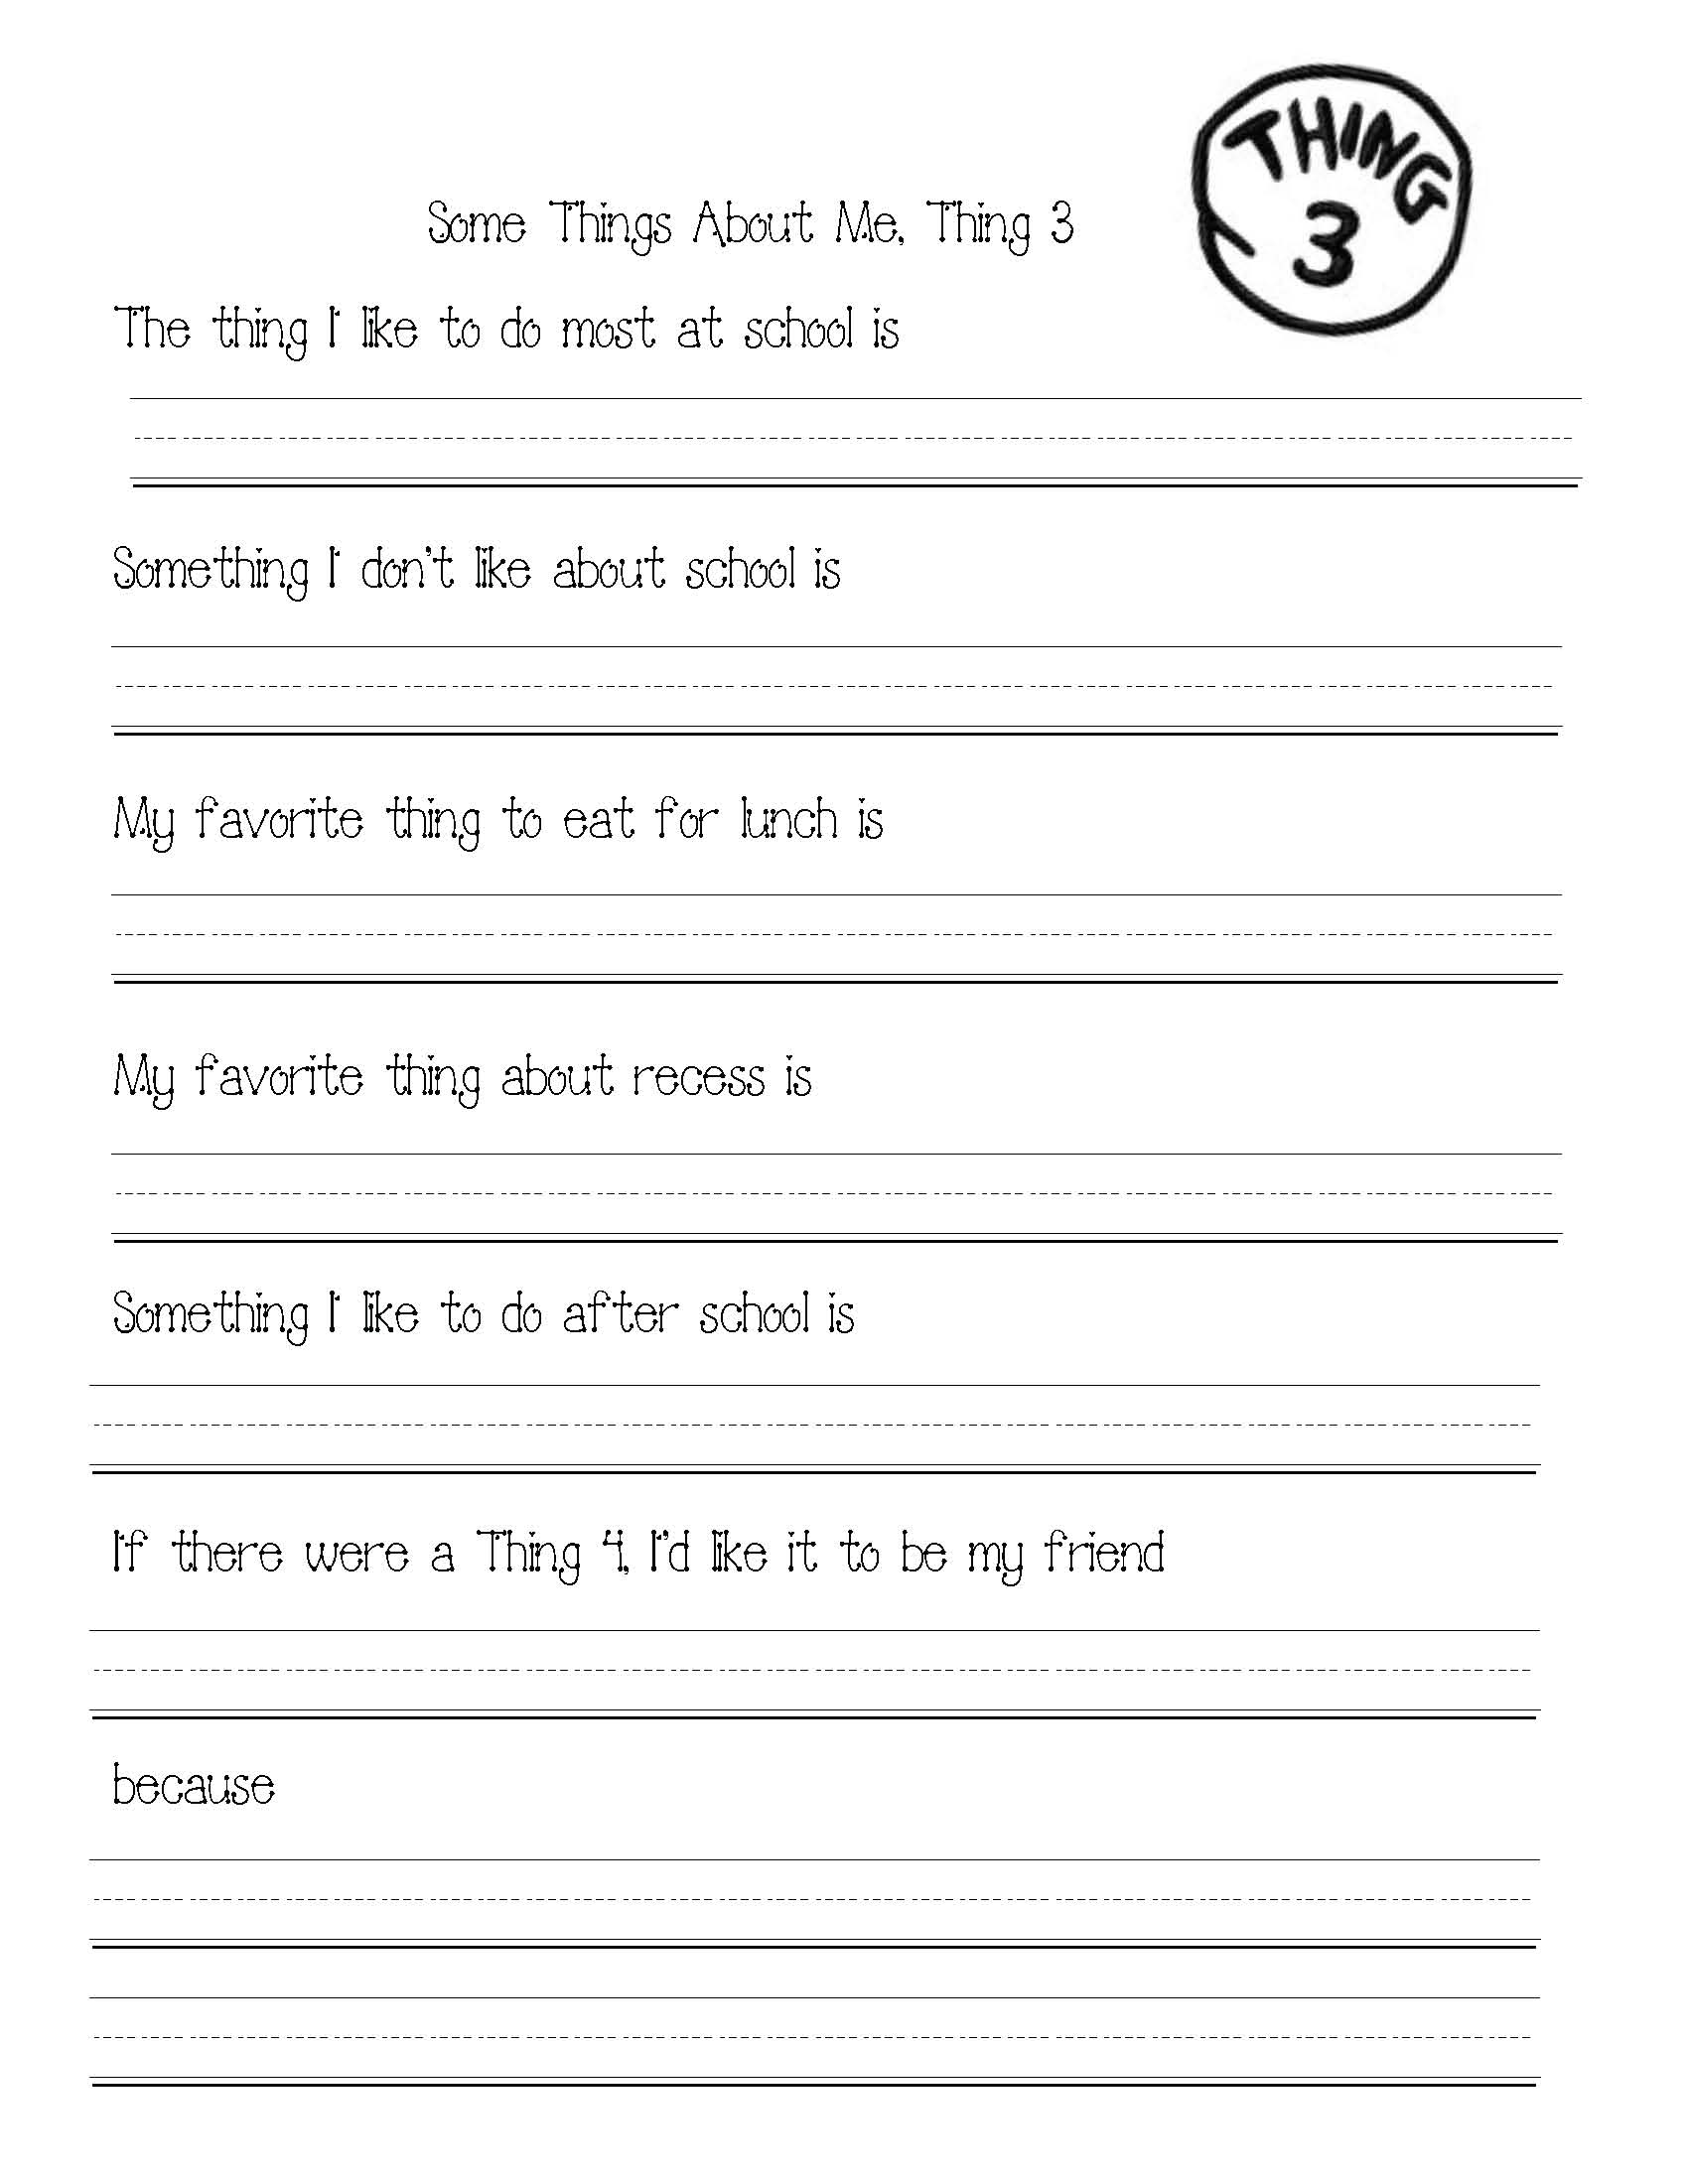 seuss activities, cat in the hat activities, Thing 1 and Thing 2 activities, writing prompts for March, Seuss writing prompts, seuss crafts, thing 1 and thing 2 crafts,